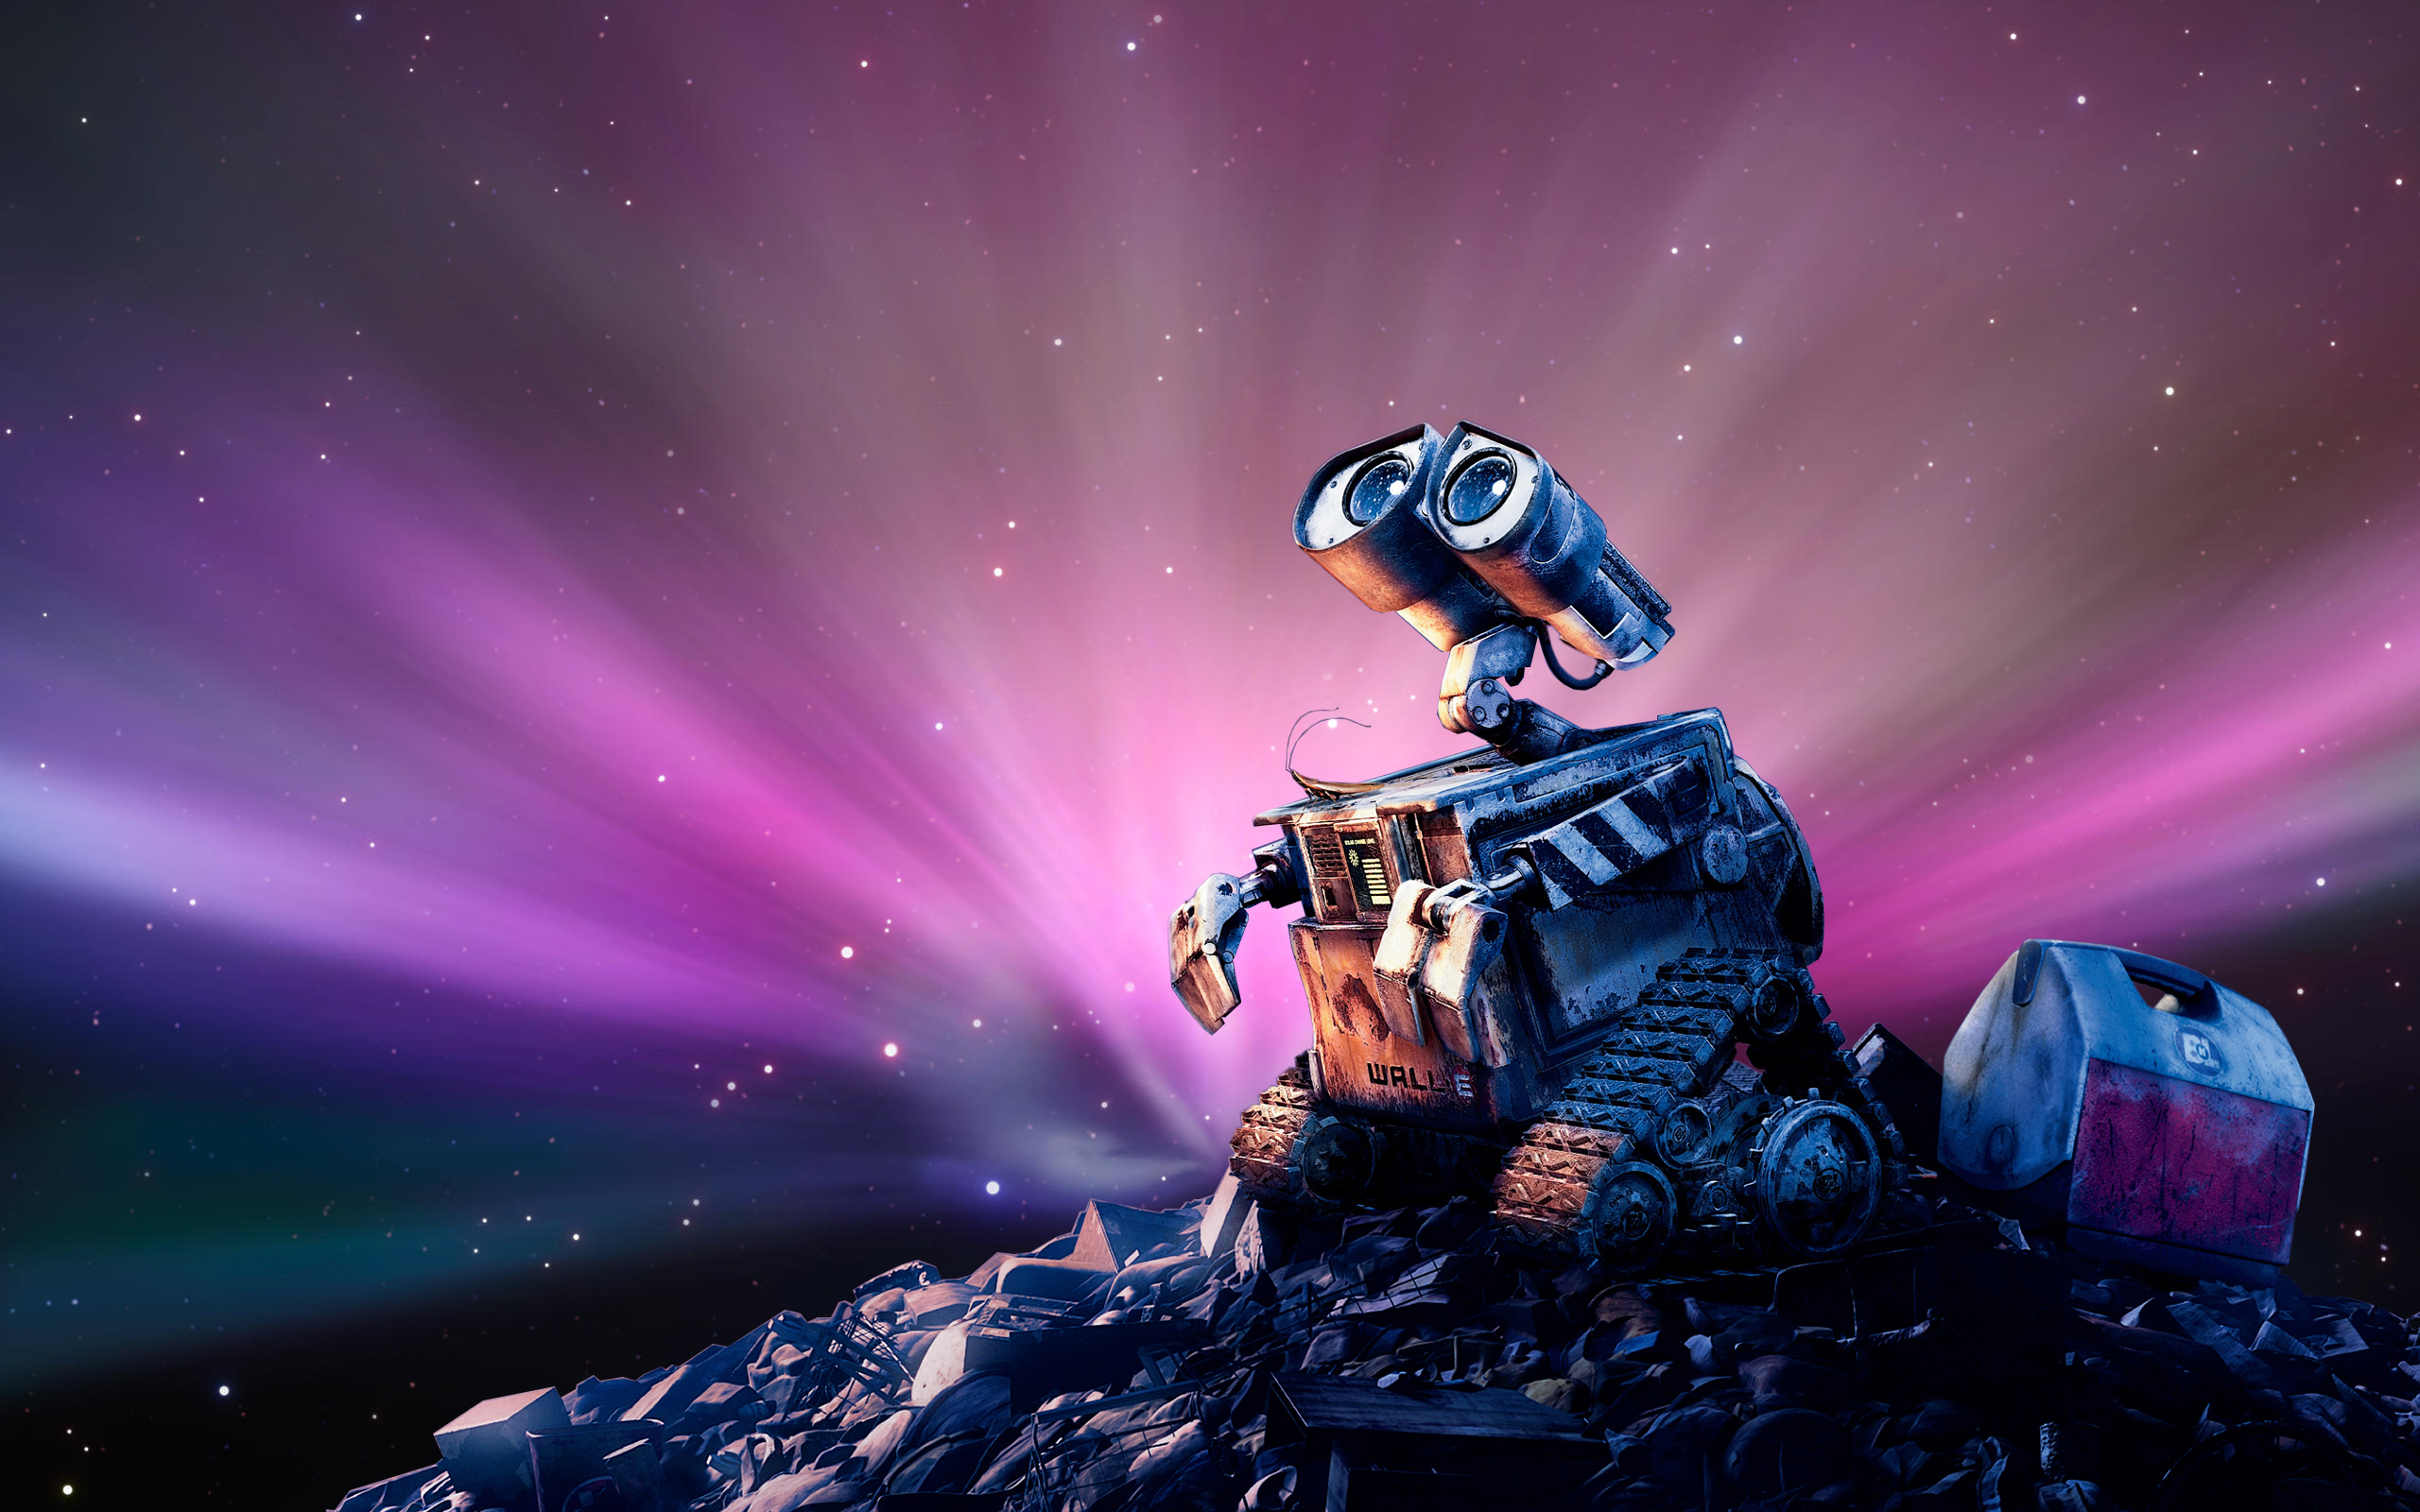 Wall-E background